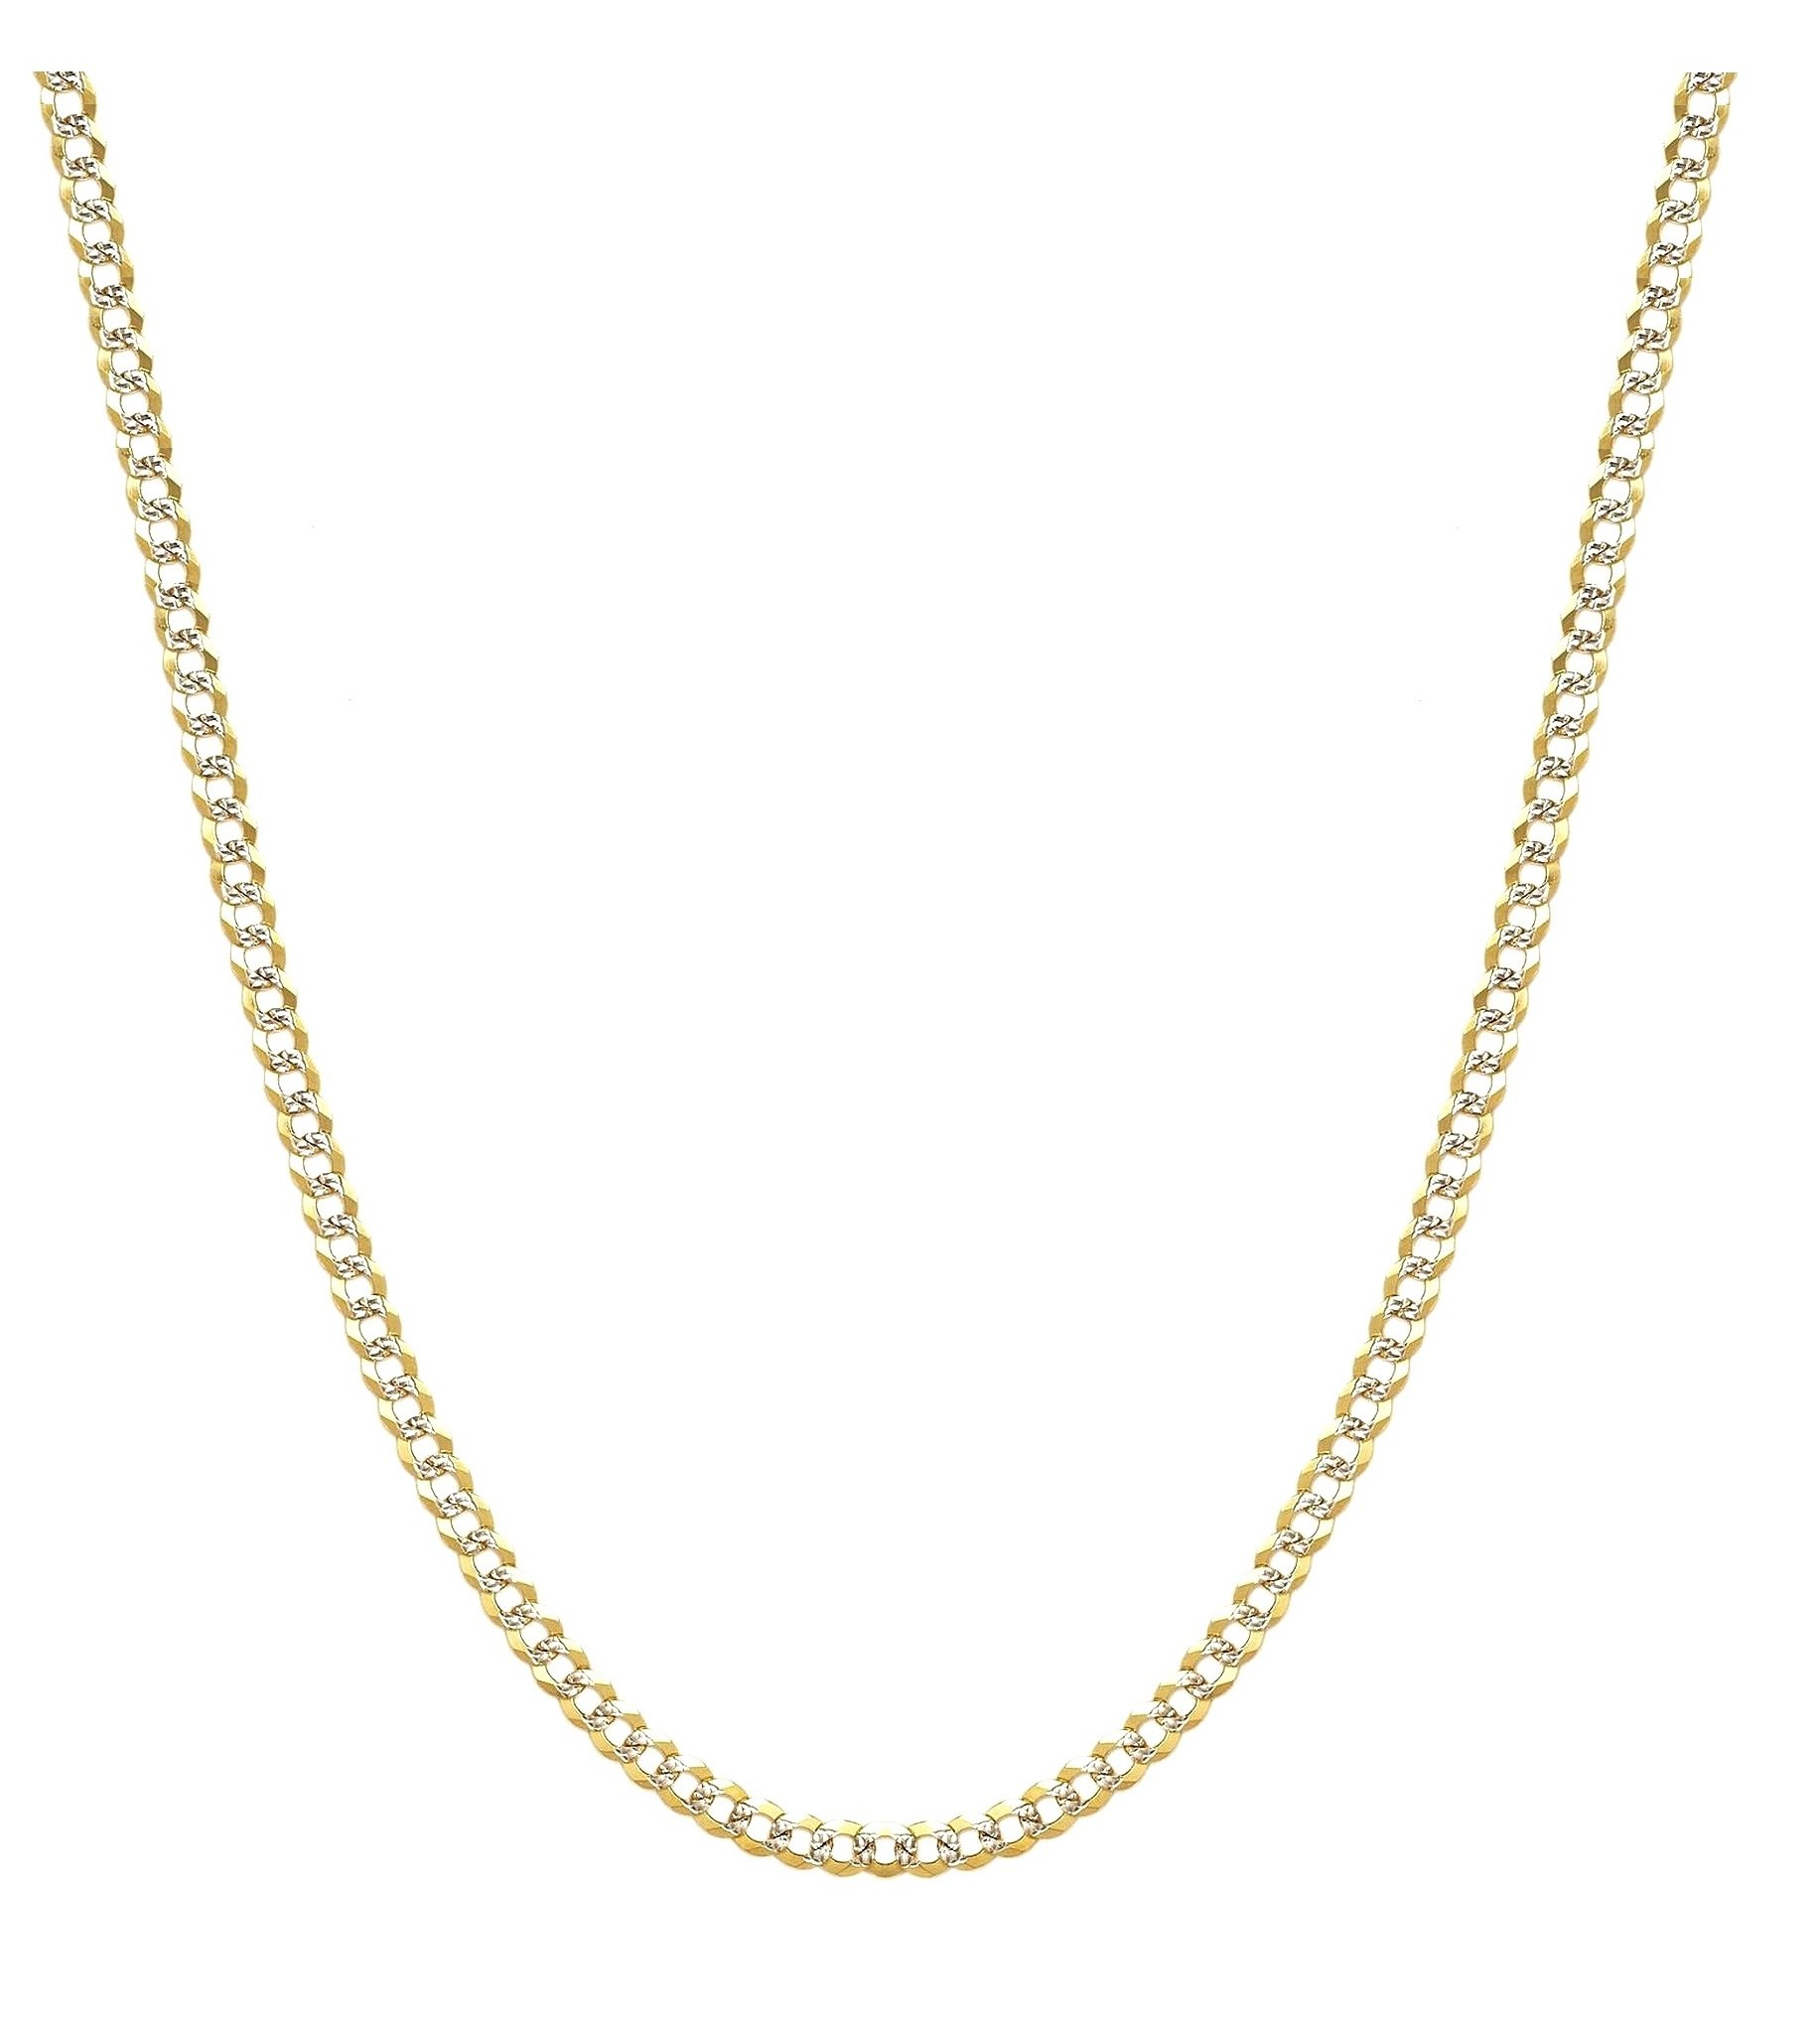 10K Yellow Gold 3.5mm Two Tone Cuban Curb Diamond Cut Pave Chain Necklace -20